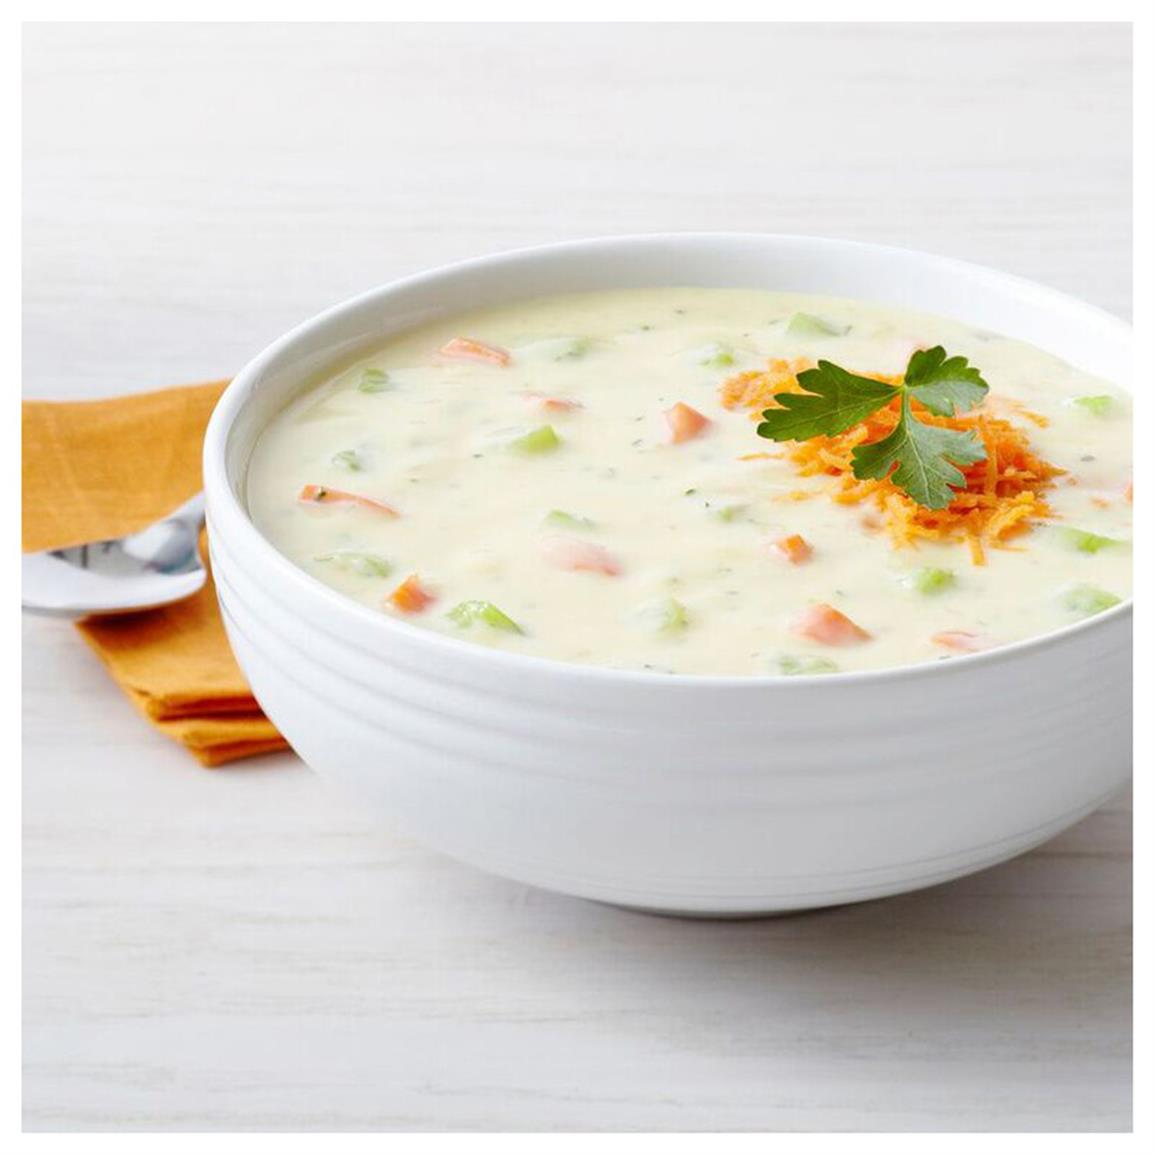 1 can Cream of Chicken Soup (32 servings)